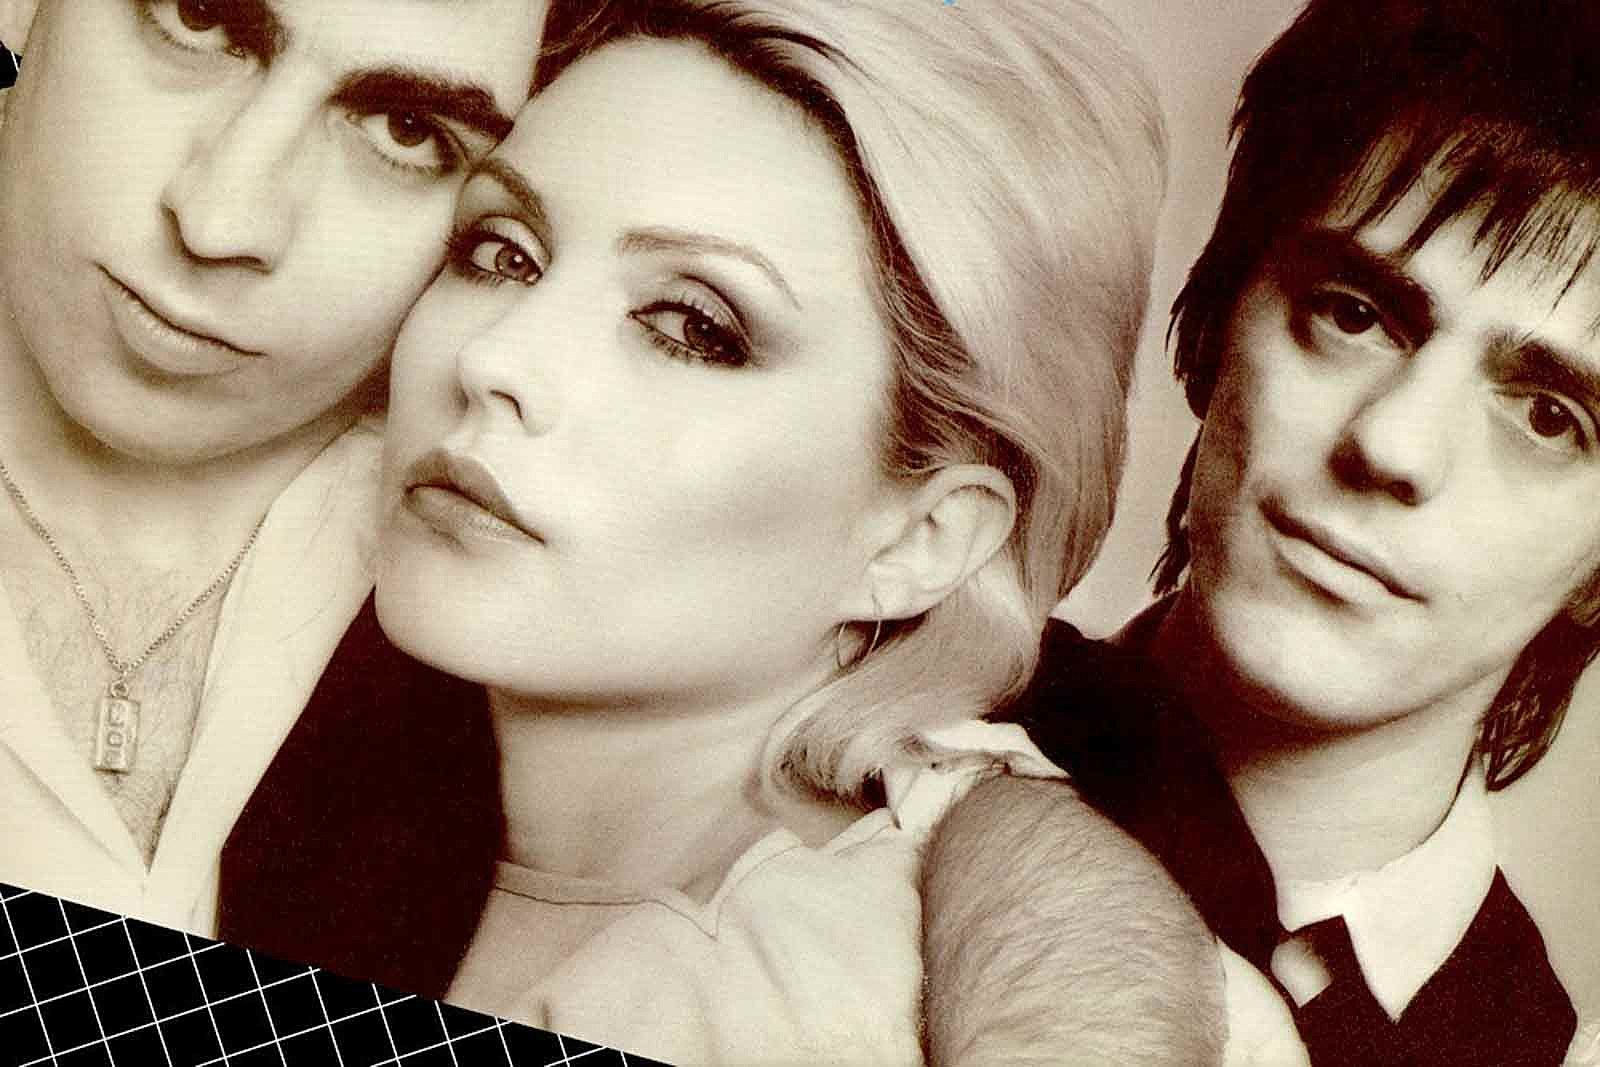 40 Years Ago: Blondie Follow Up Breakthrough With Eclectic 'Eat to the Beat'